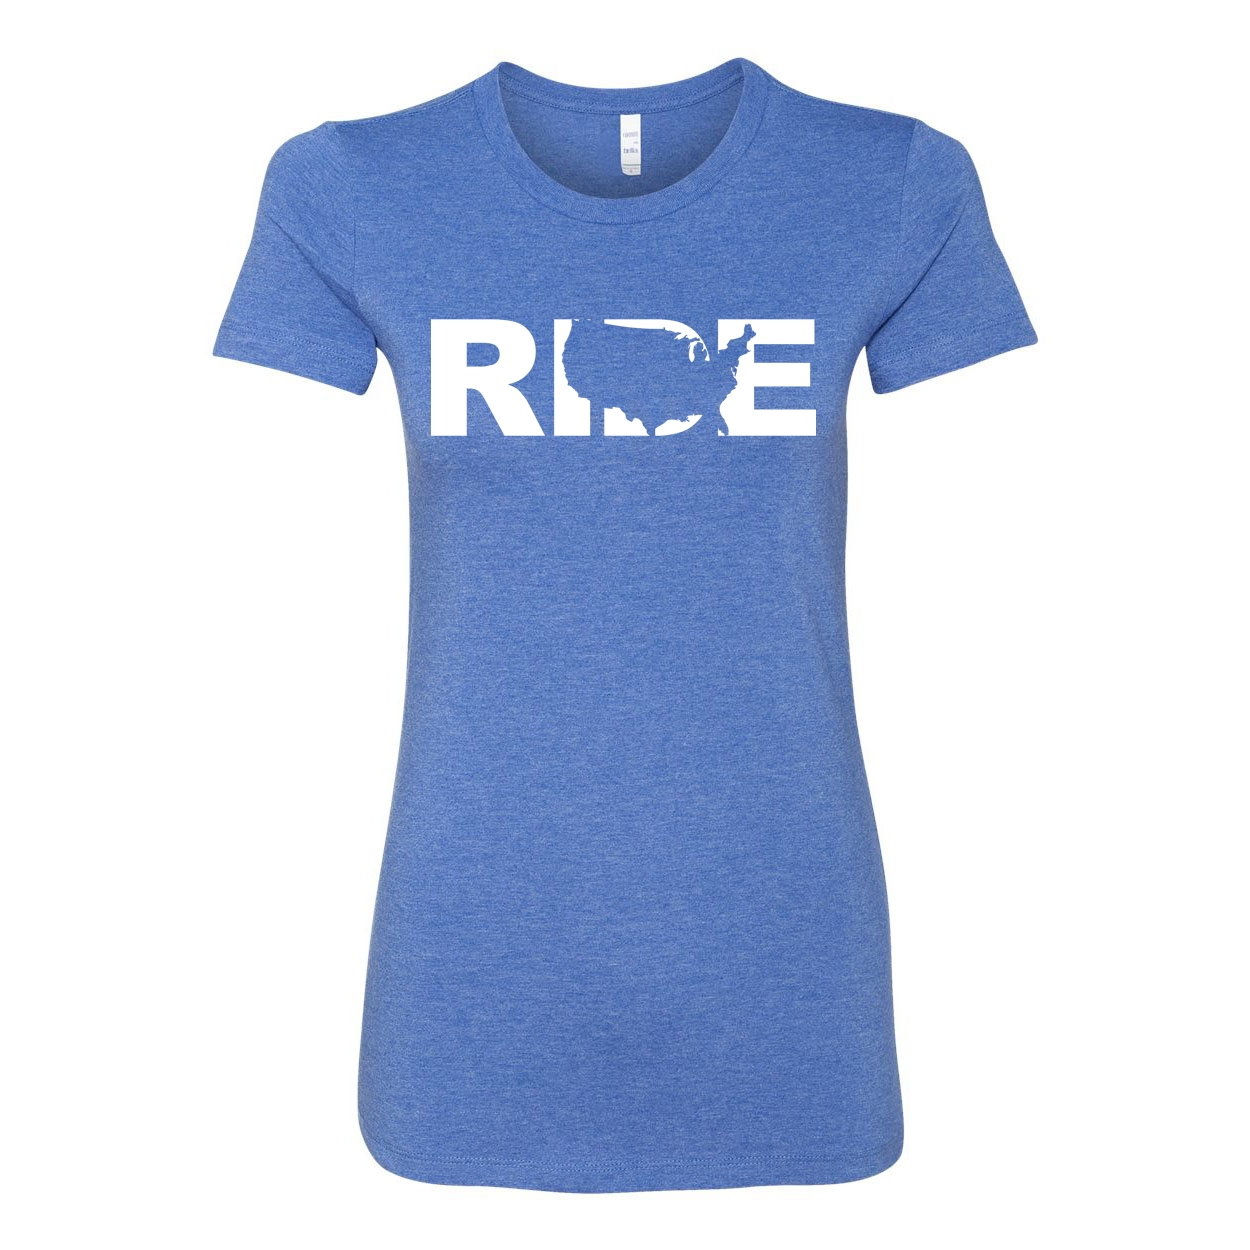 Ride United States Classic Women's Fitted Tri-Blend T-Shirt True Royal Heather Blue (White Logo)